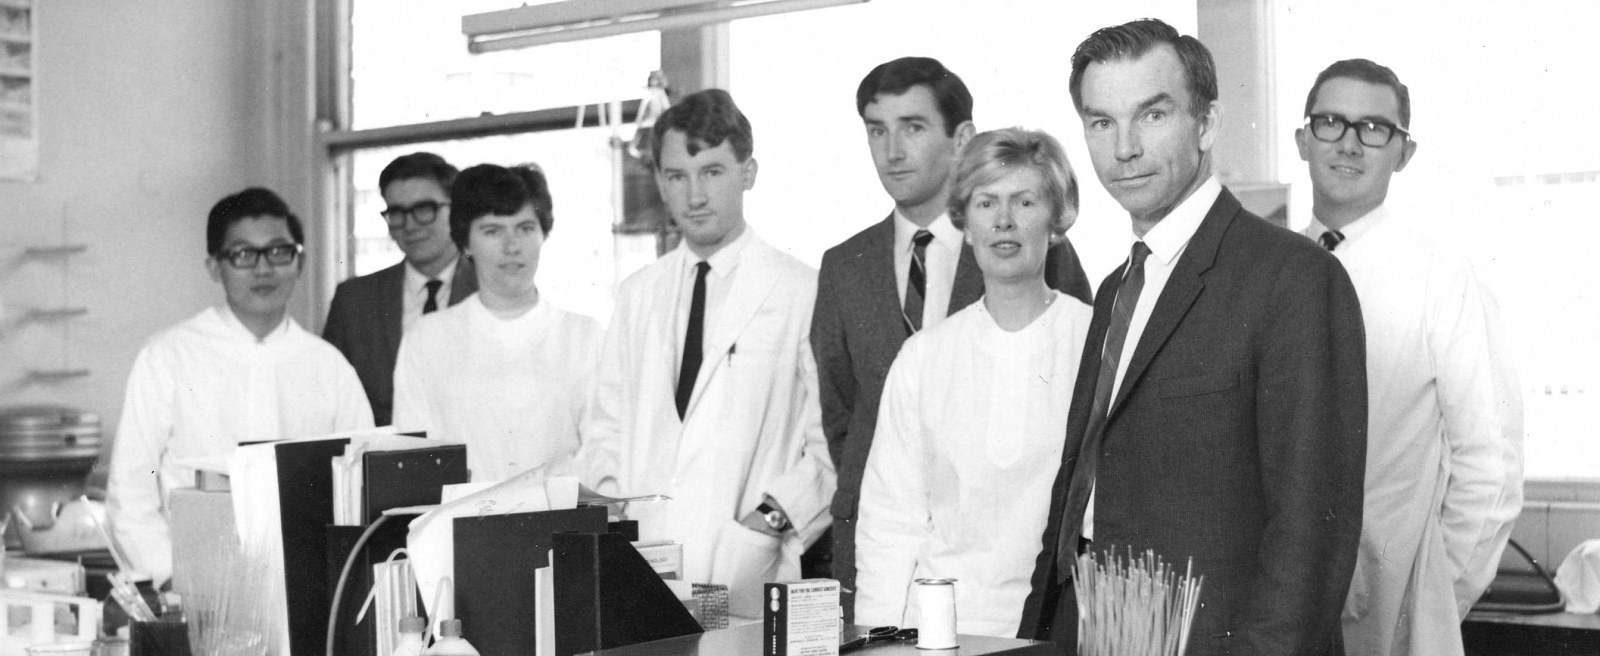 Group photo of the Clinical Research Unit. From left to right: C Yap, John Mathews, Mrs Merrill Rowley, P Thompson, Vance Gledhill, Senga Whittingham, Ian Mackay and Alex McPherson.